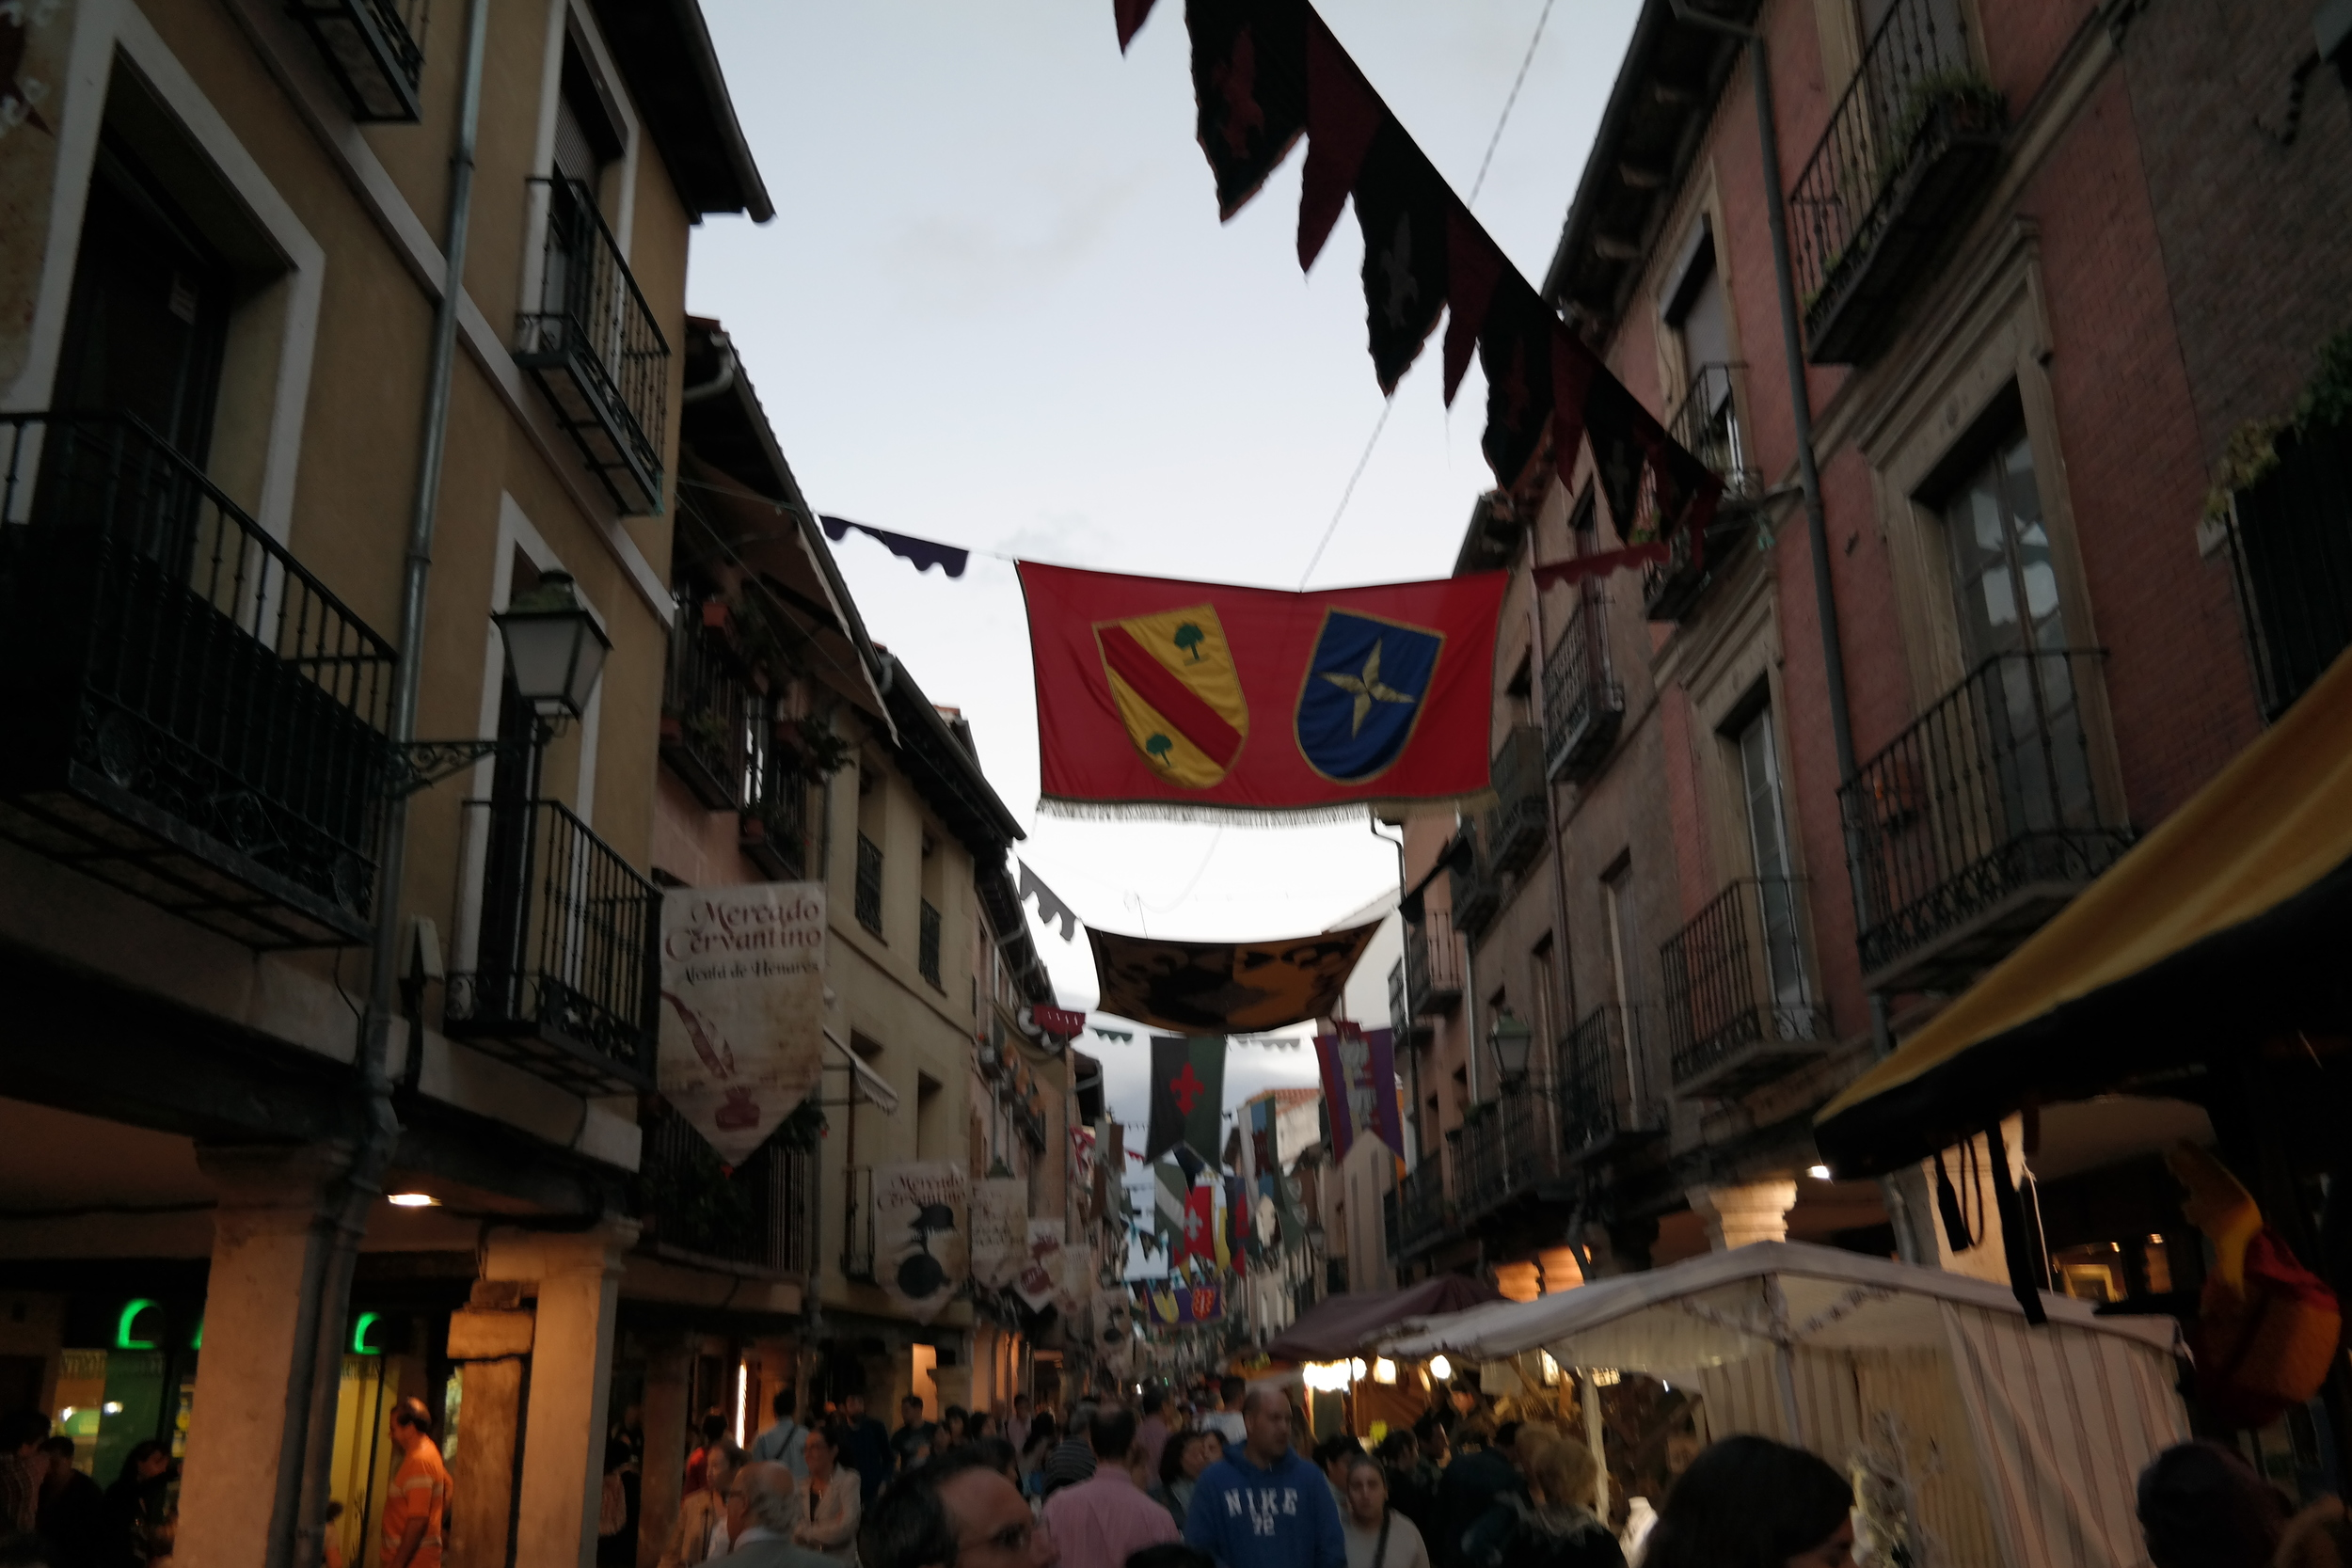 The view of Calle Mayor, one of the main streets here in Alcalá.